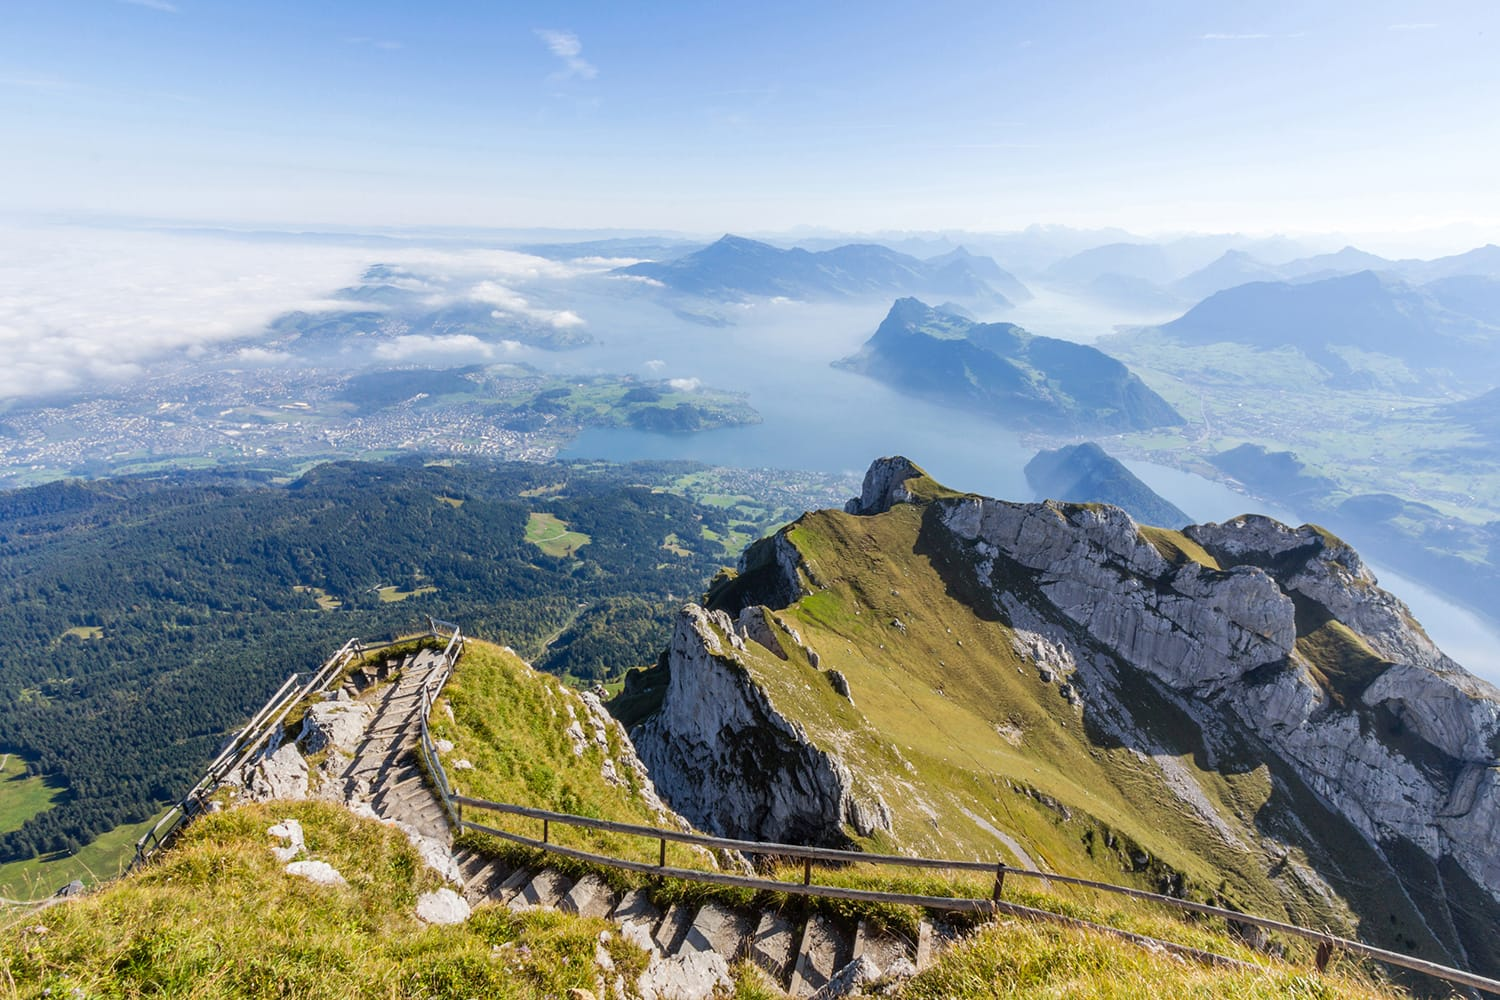 View of Swiss Alps from Mt. Pilatus in Lucerne, Switzerland